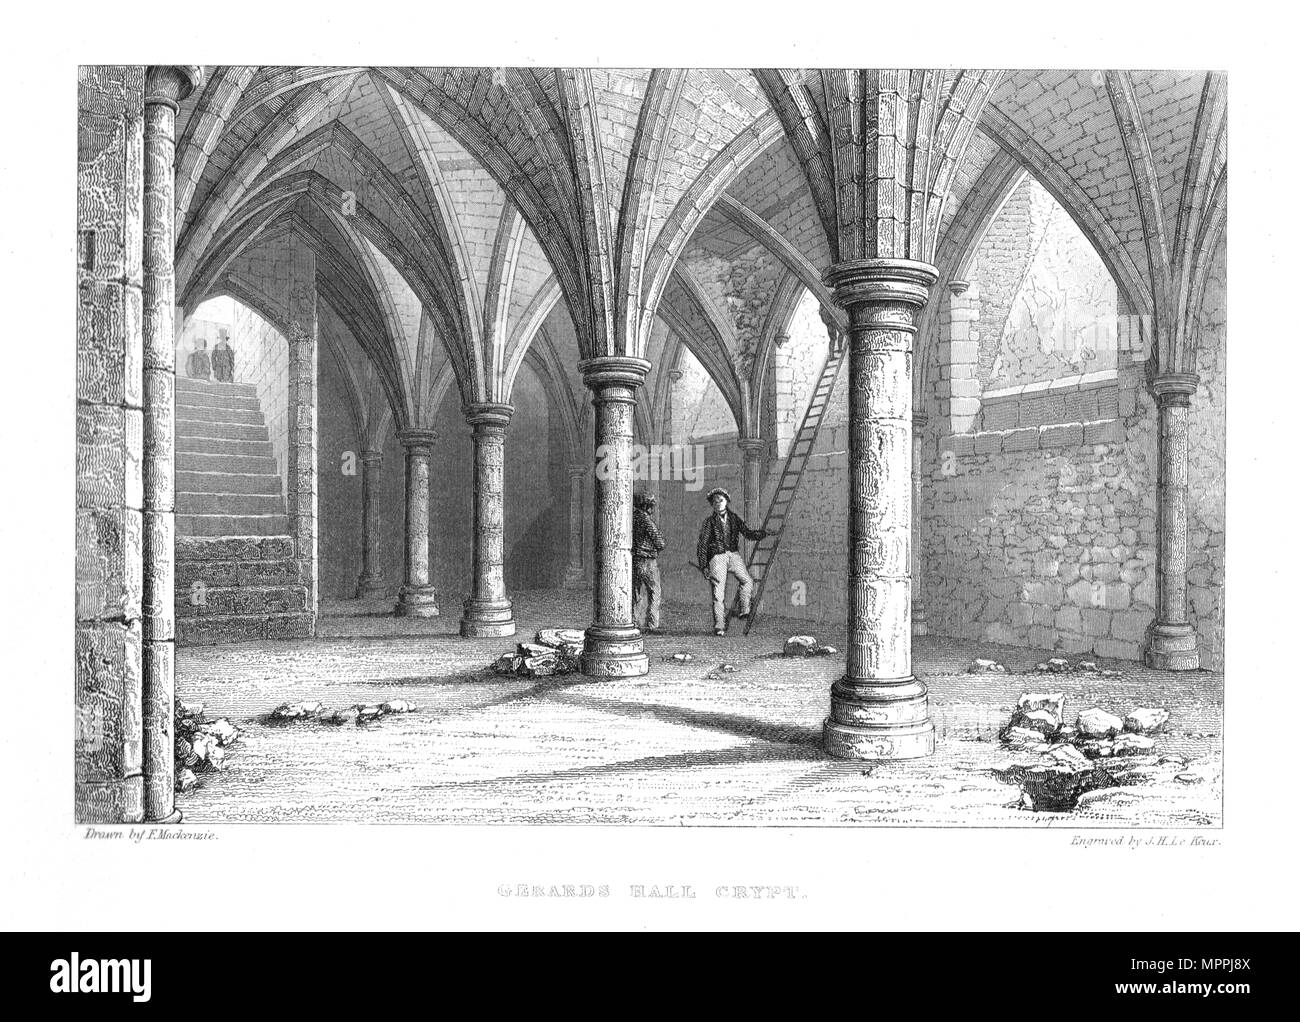 Gerards Hall Crypt.Guildhall London, 1886. Artist: John Henry Le Keux. - Stock Image